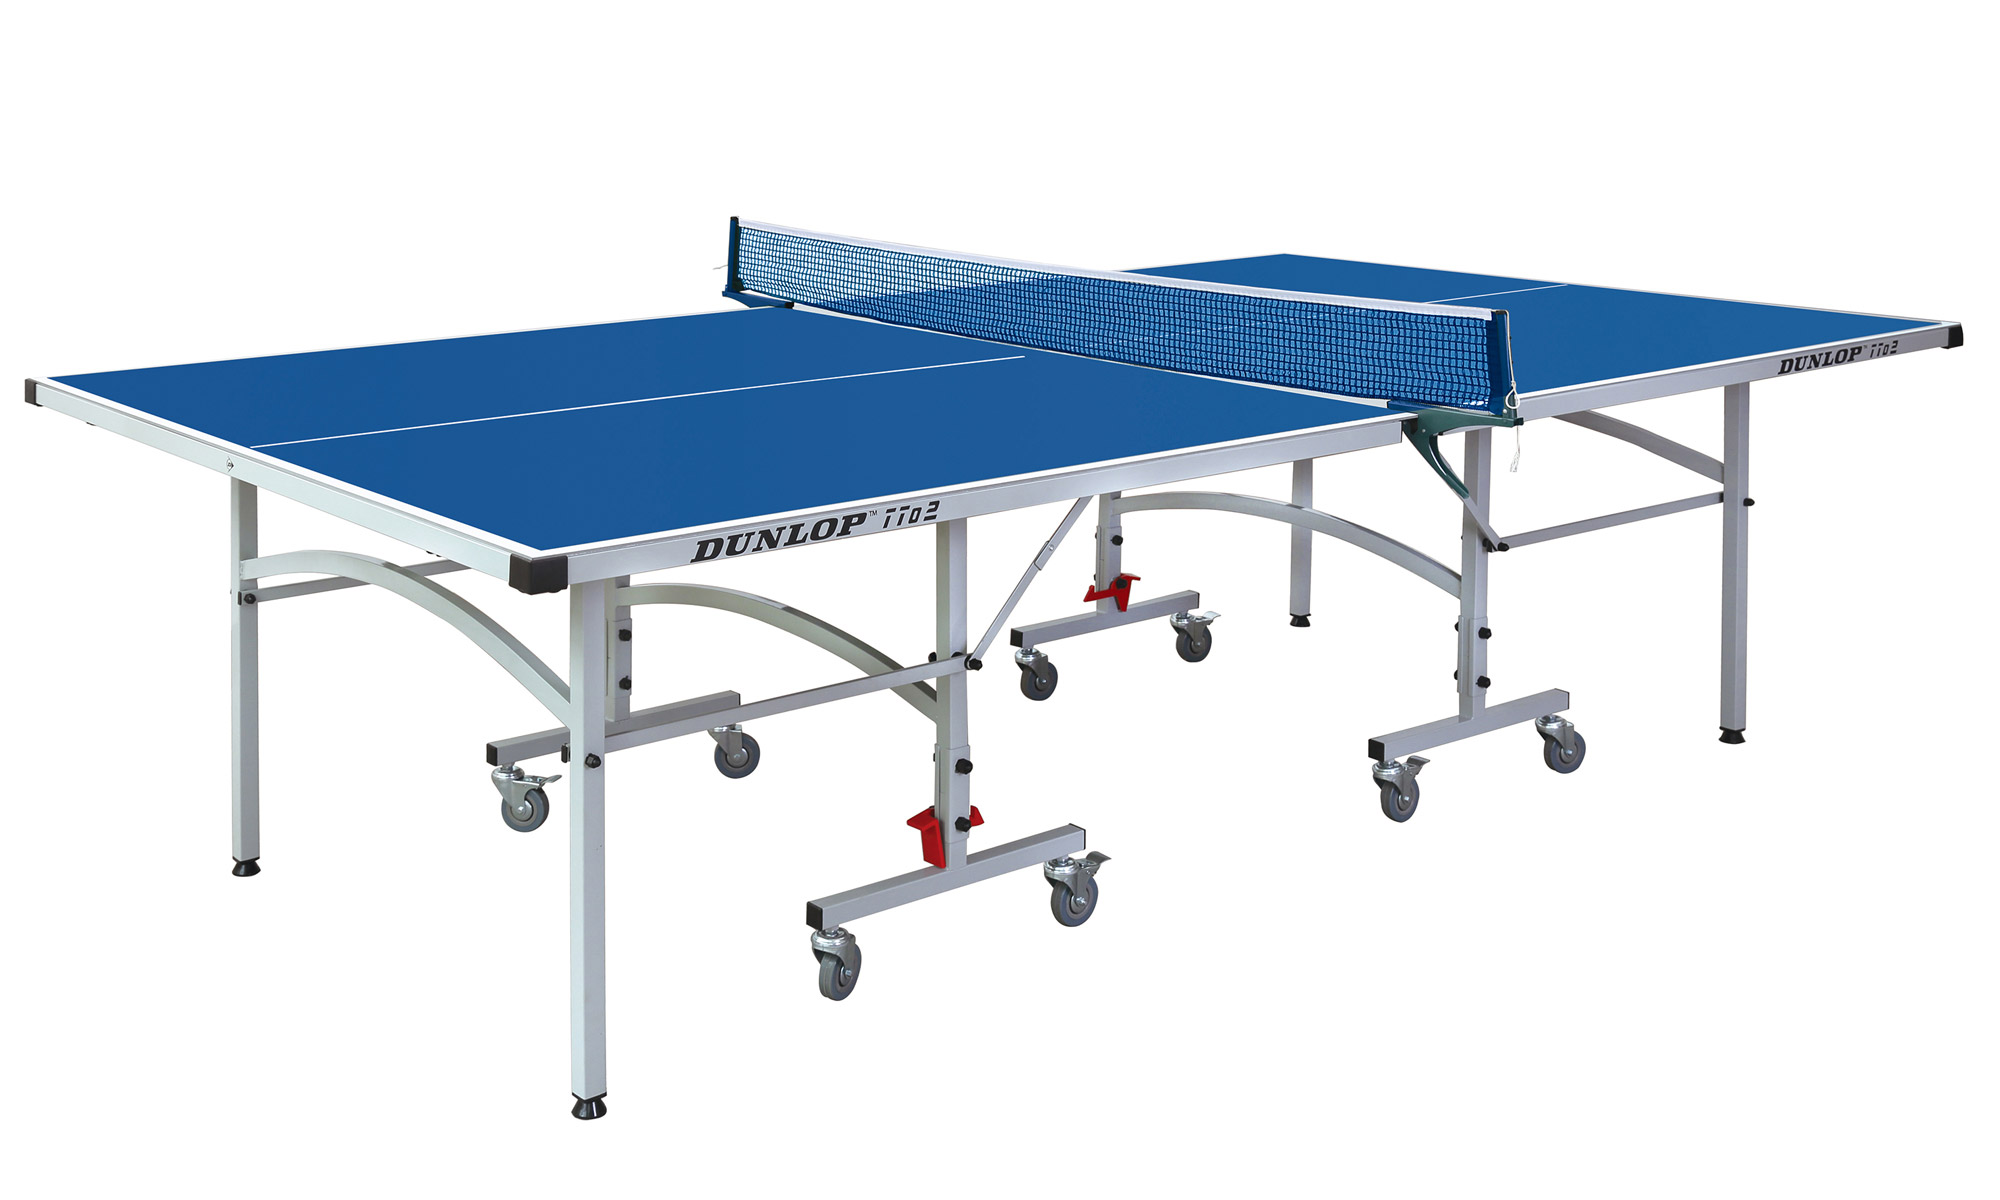 Dunlop tto2 outdoor table tennis table - Used outdoor table tennis tables for sale ...